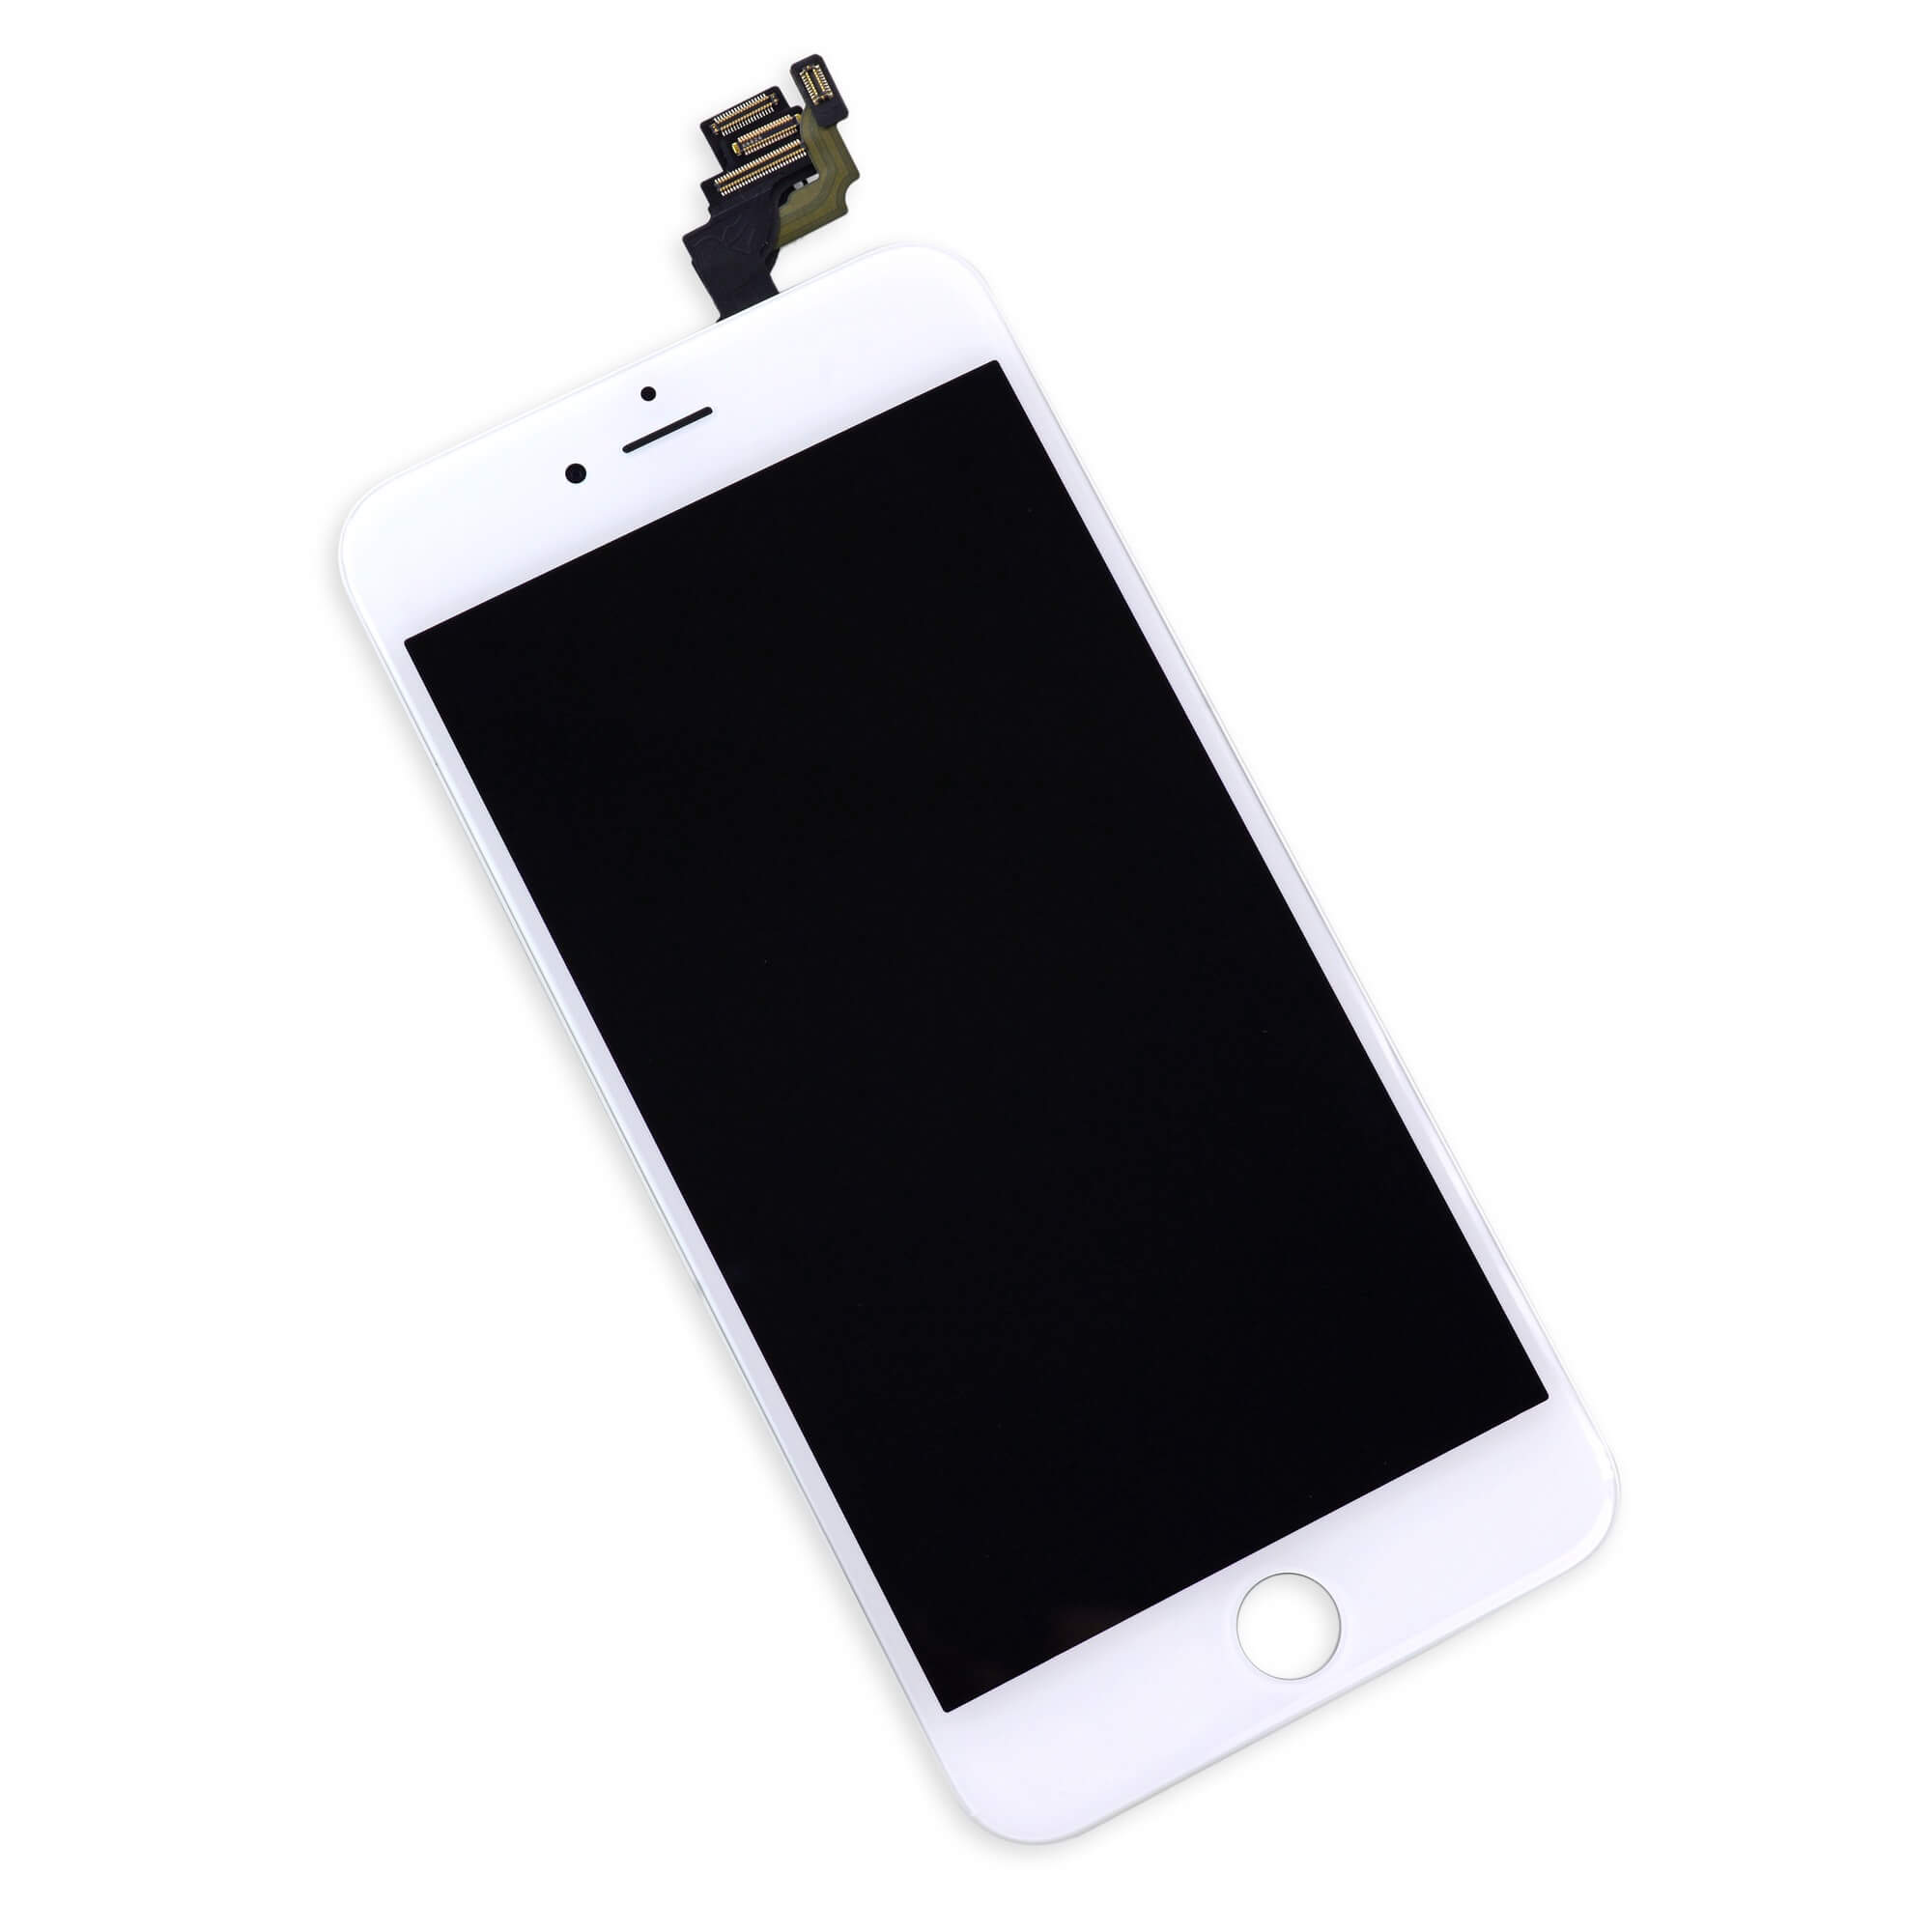 buy online d4640 279c5 Original Display with Touch Screen for Apple iPhone 6 Plus